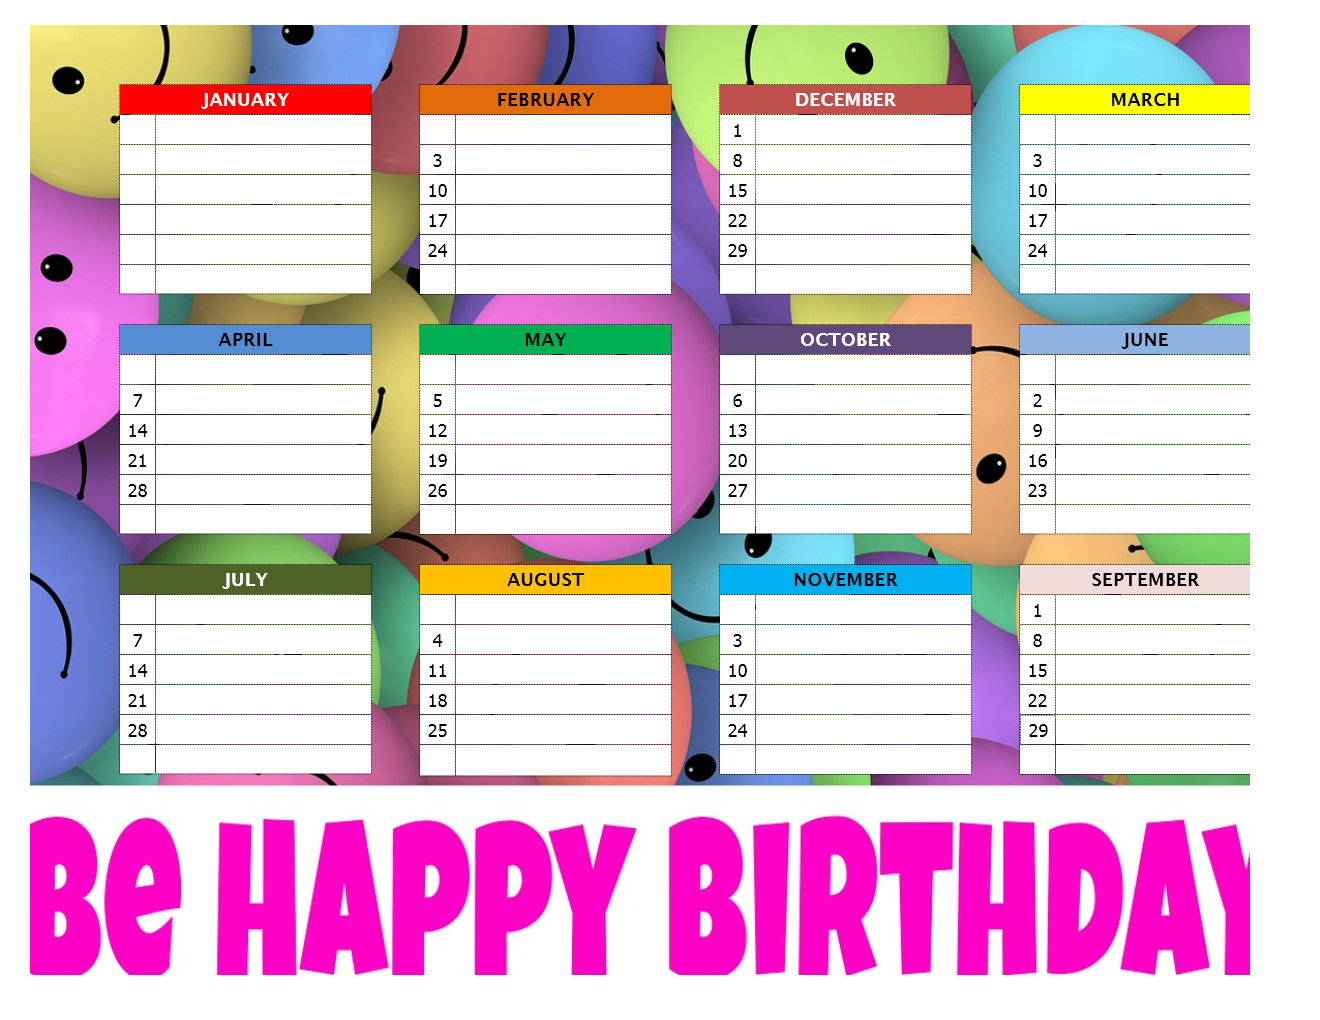 Birthday Chart regarding Edited Birthday Calendar Template